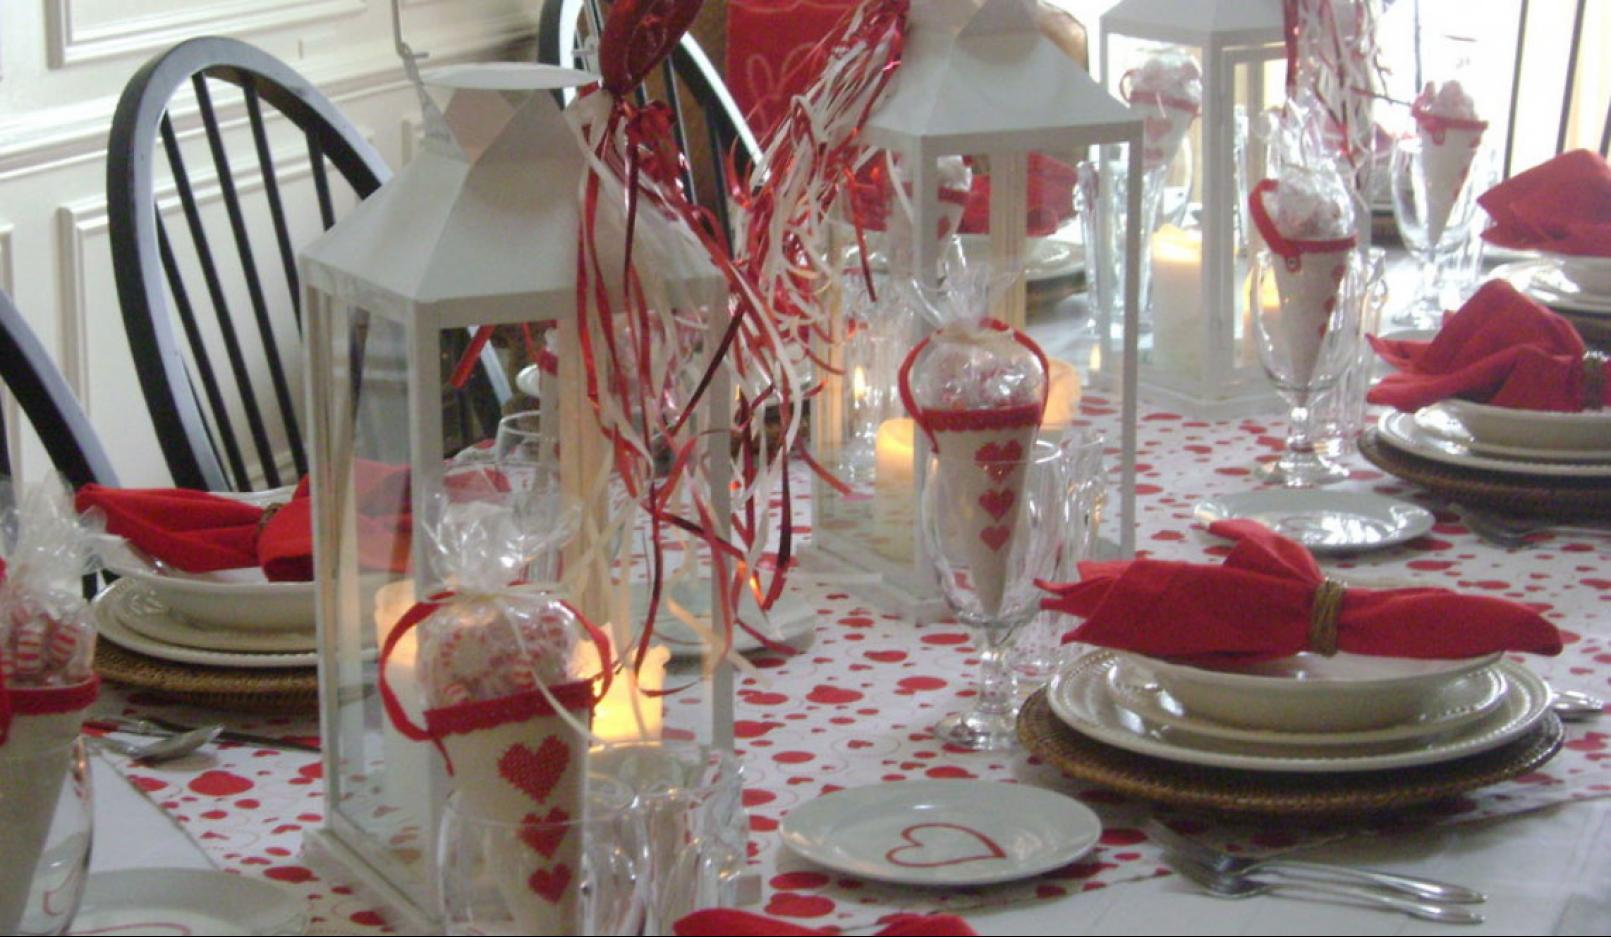 Charmant Source: Homemydesign. The Romantic Red Valentineu0027s Day Table Setting